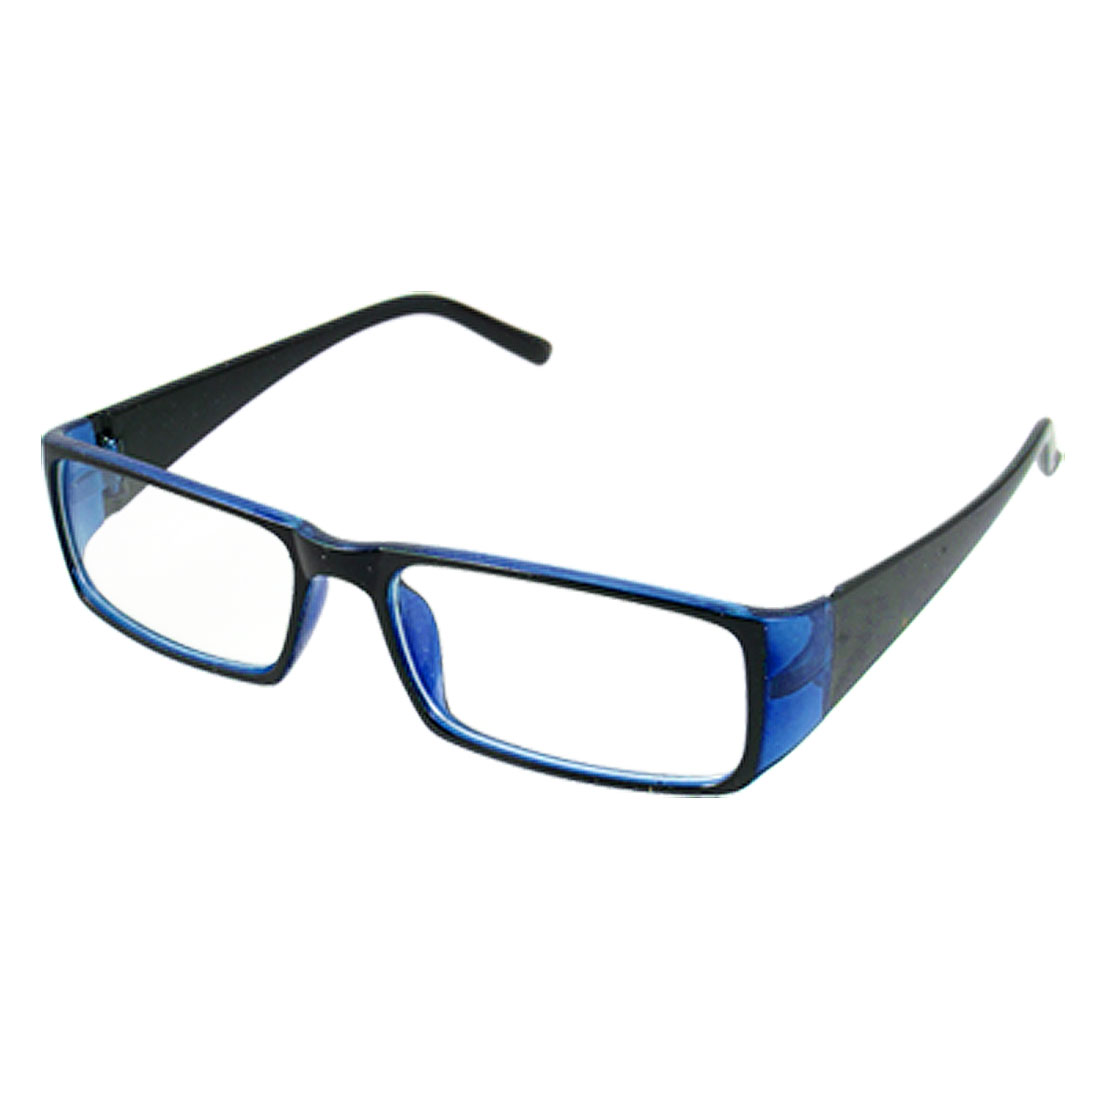 Unisex Black Blue Frame Full Rim Clear Lens Plano Eyeglasses